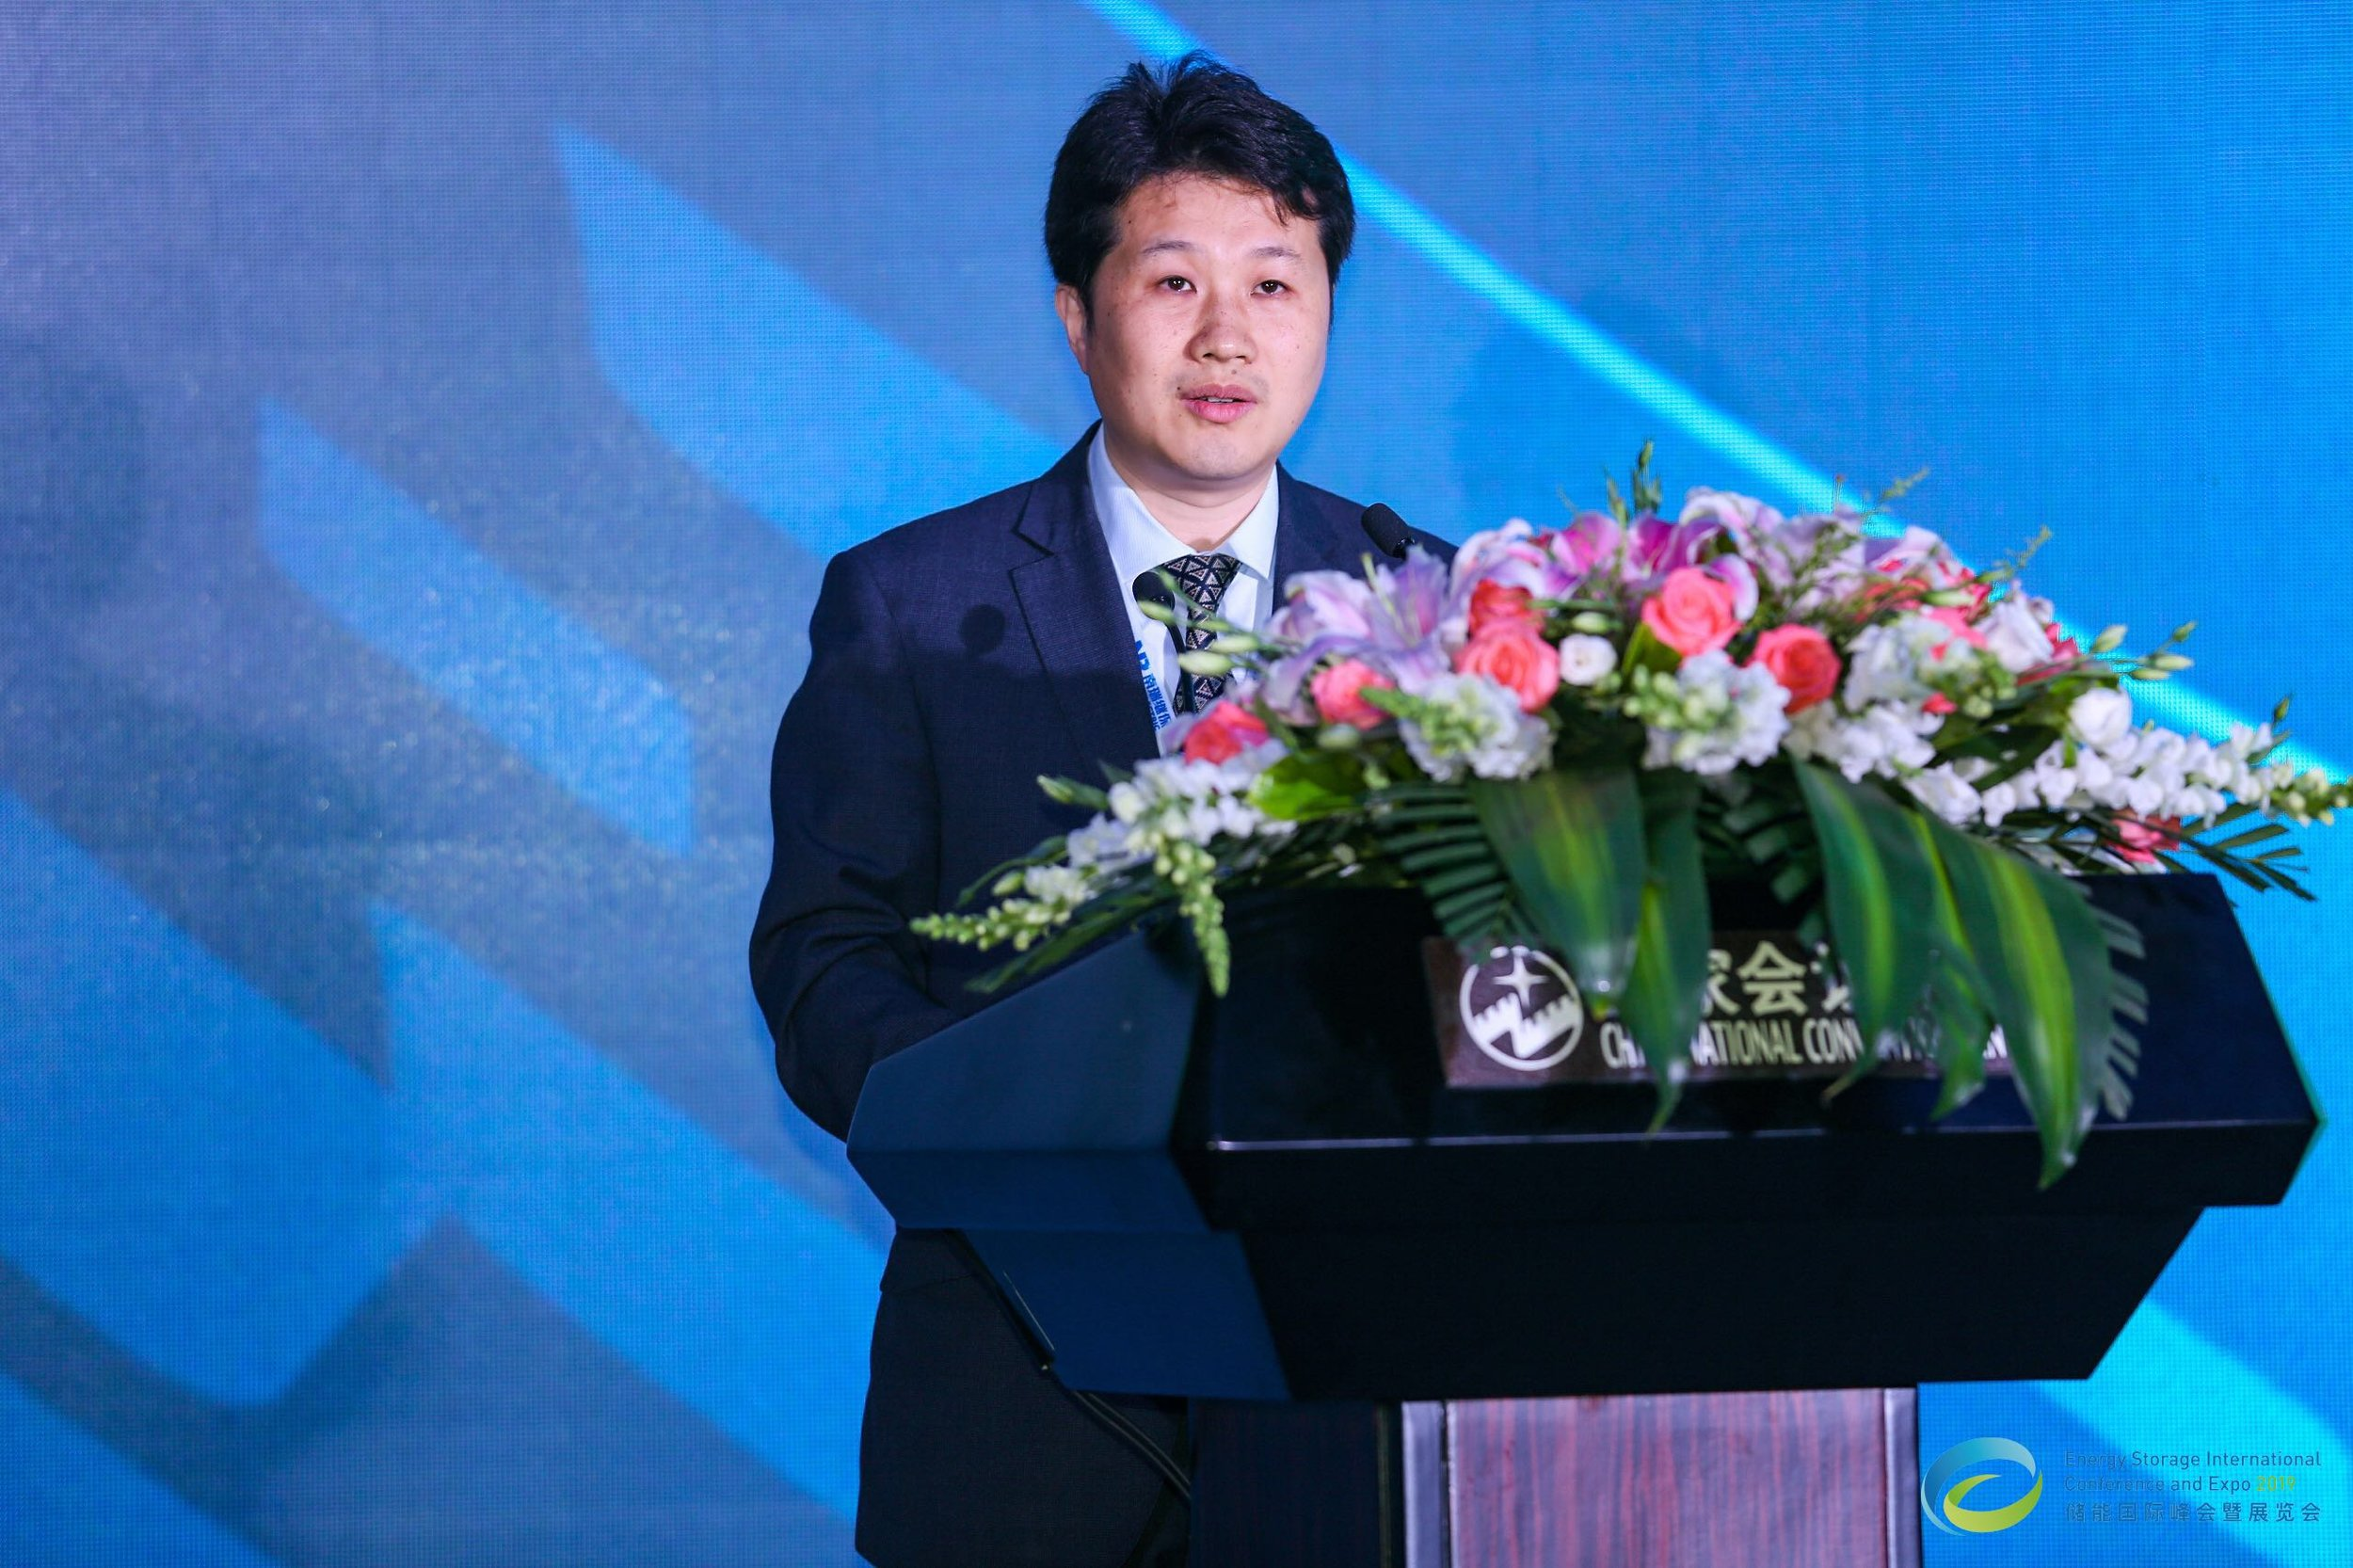 China Energy Storage Alliance Chairman Chen Haisheng Delivers a Speech